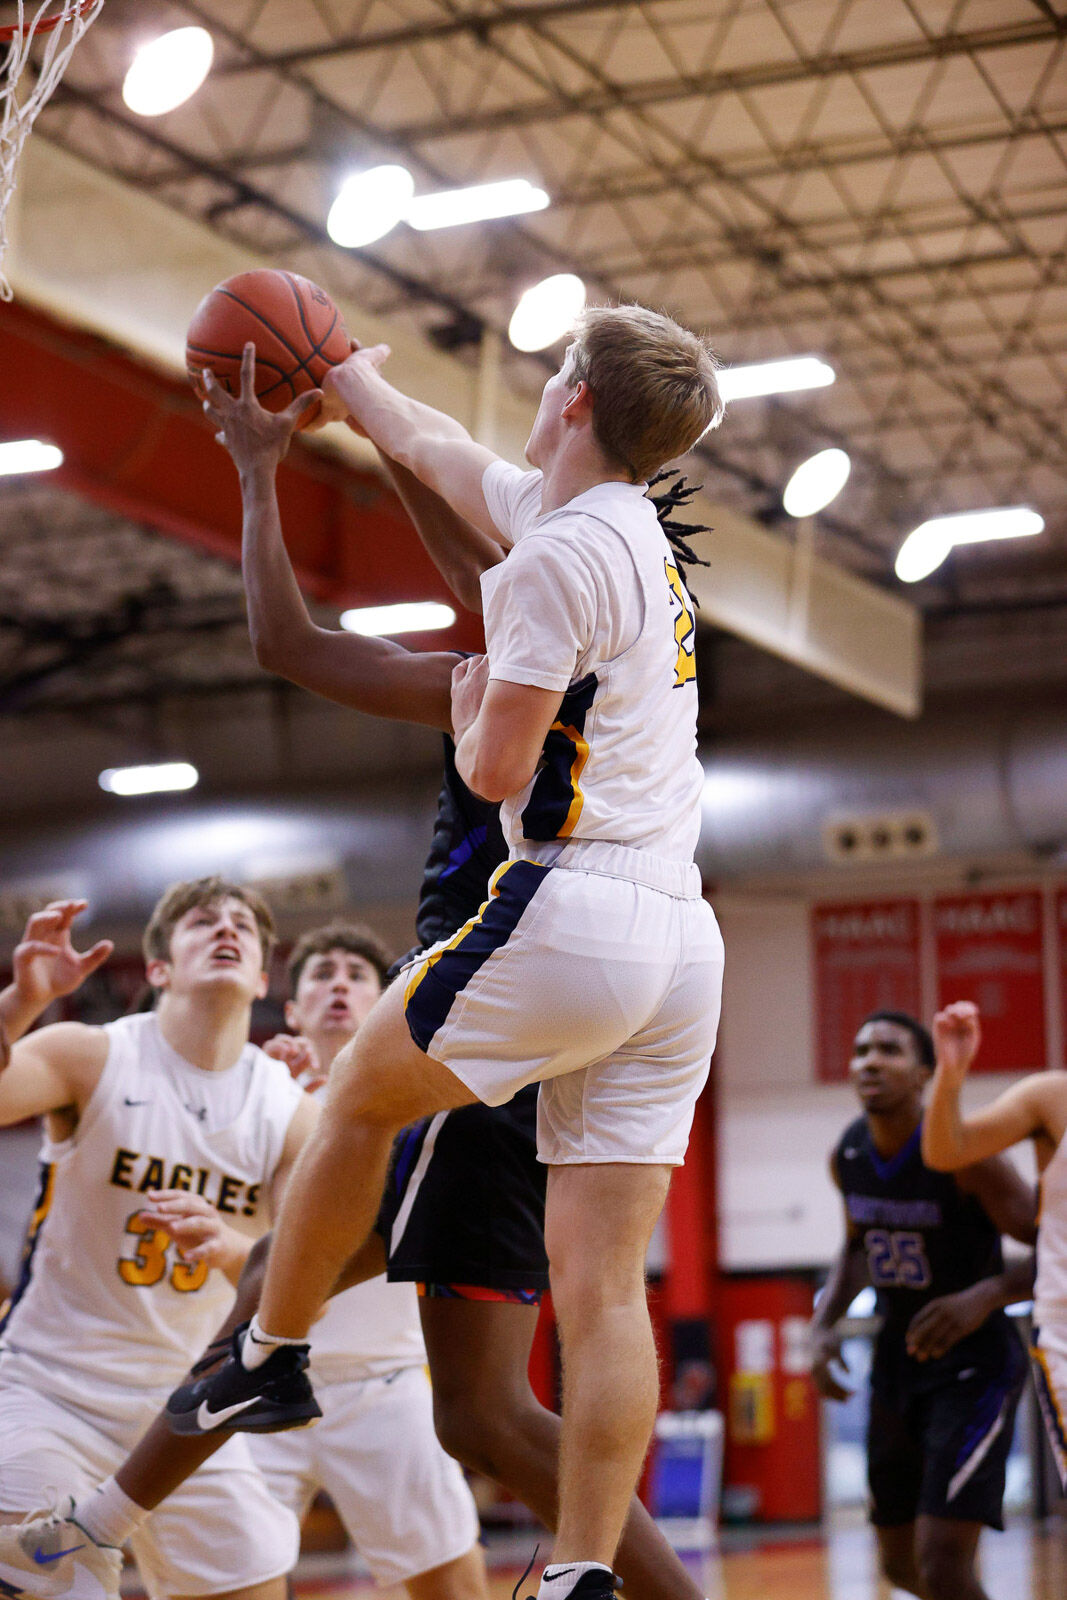 Liberty North boys basketball against Raytown South in William Jewell High School Holiday Classic-1.jpg